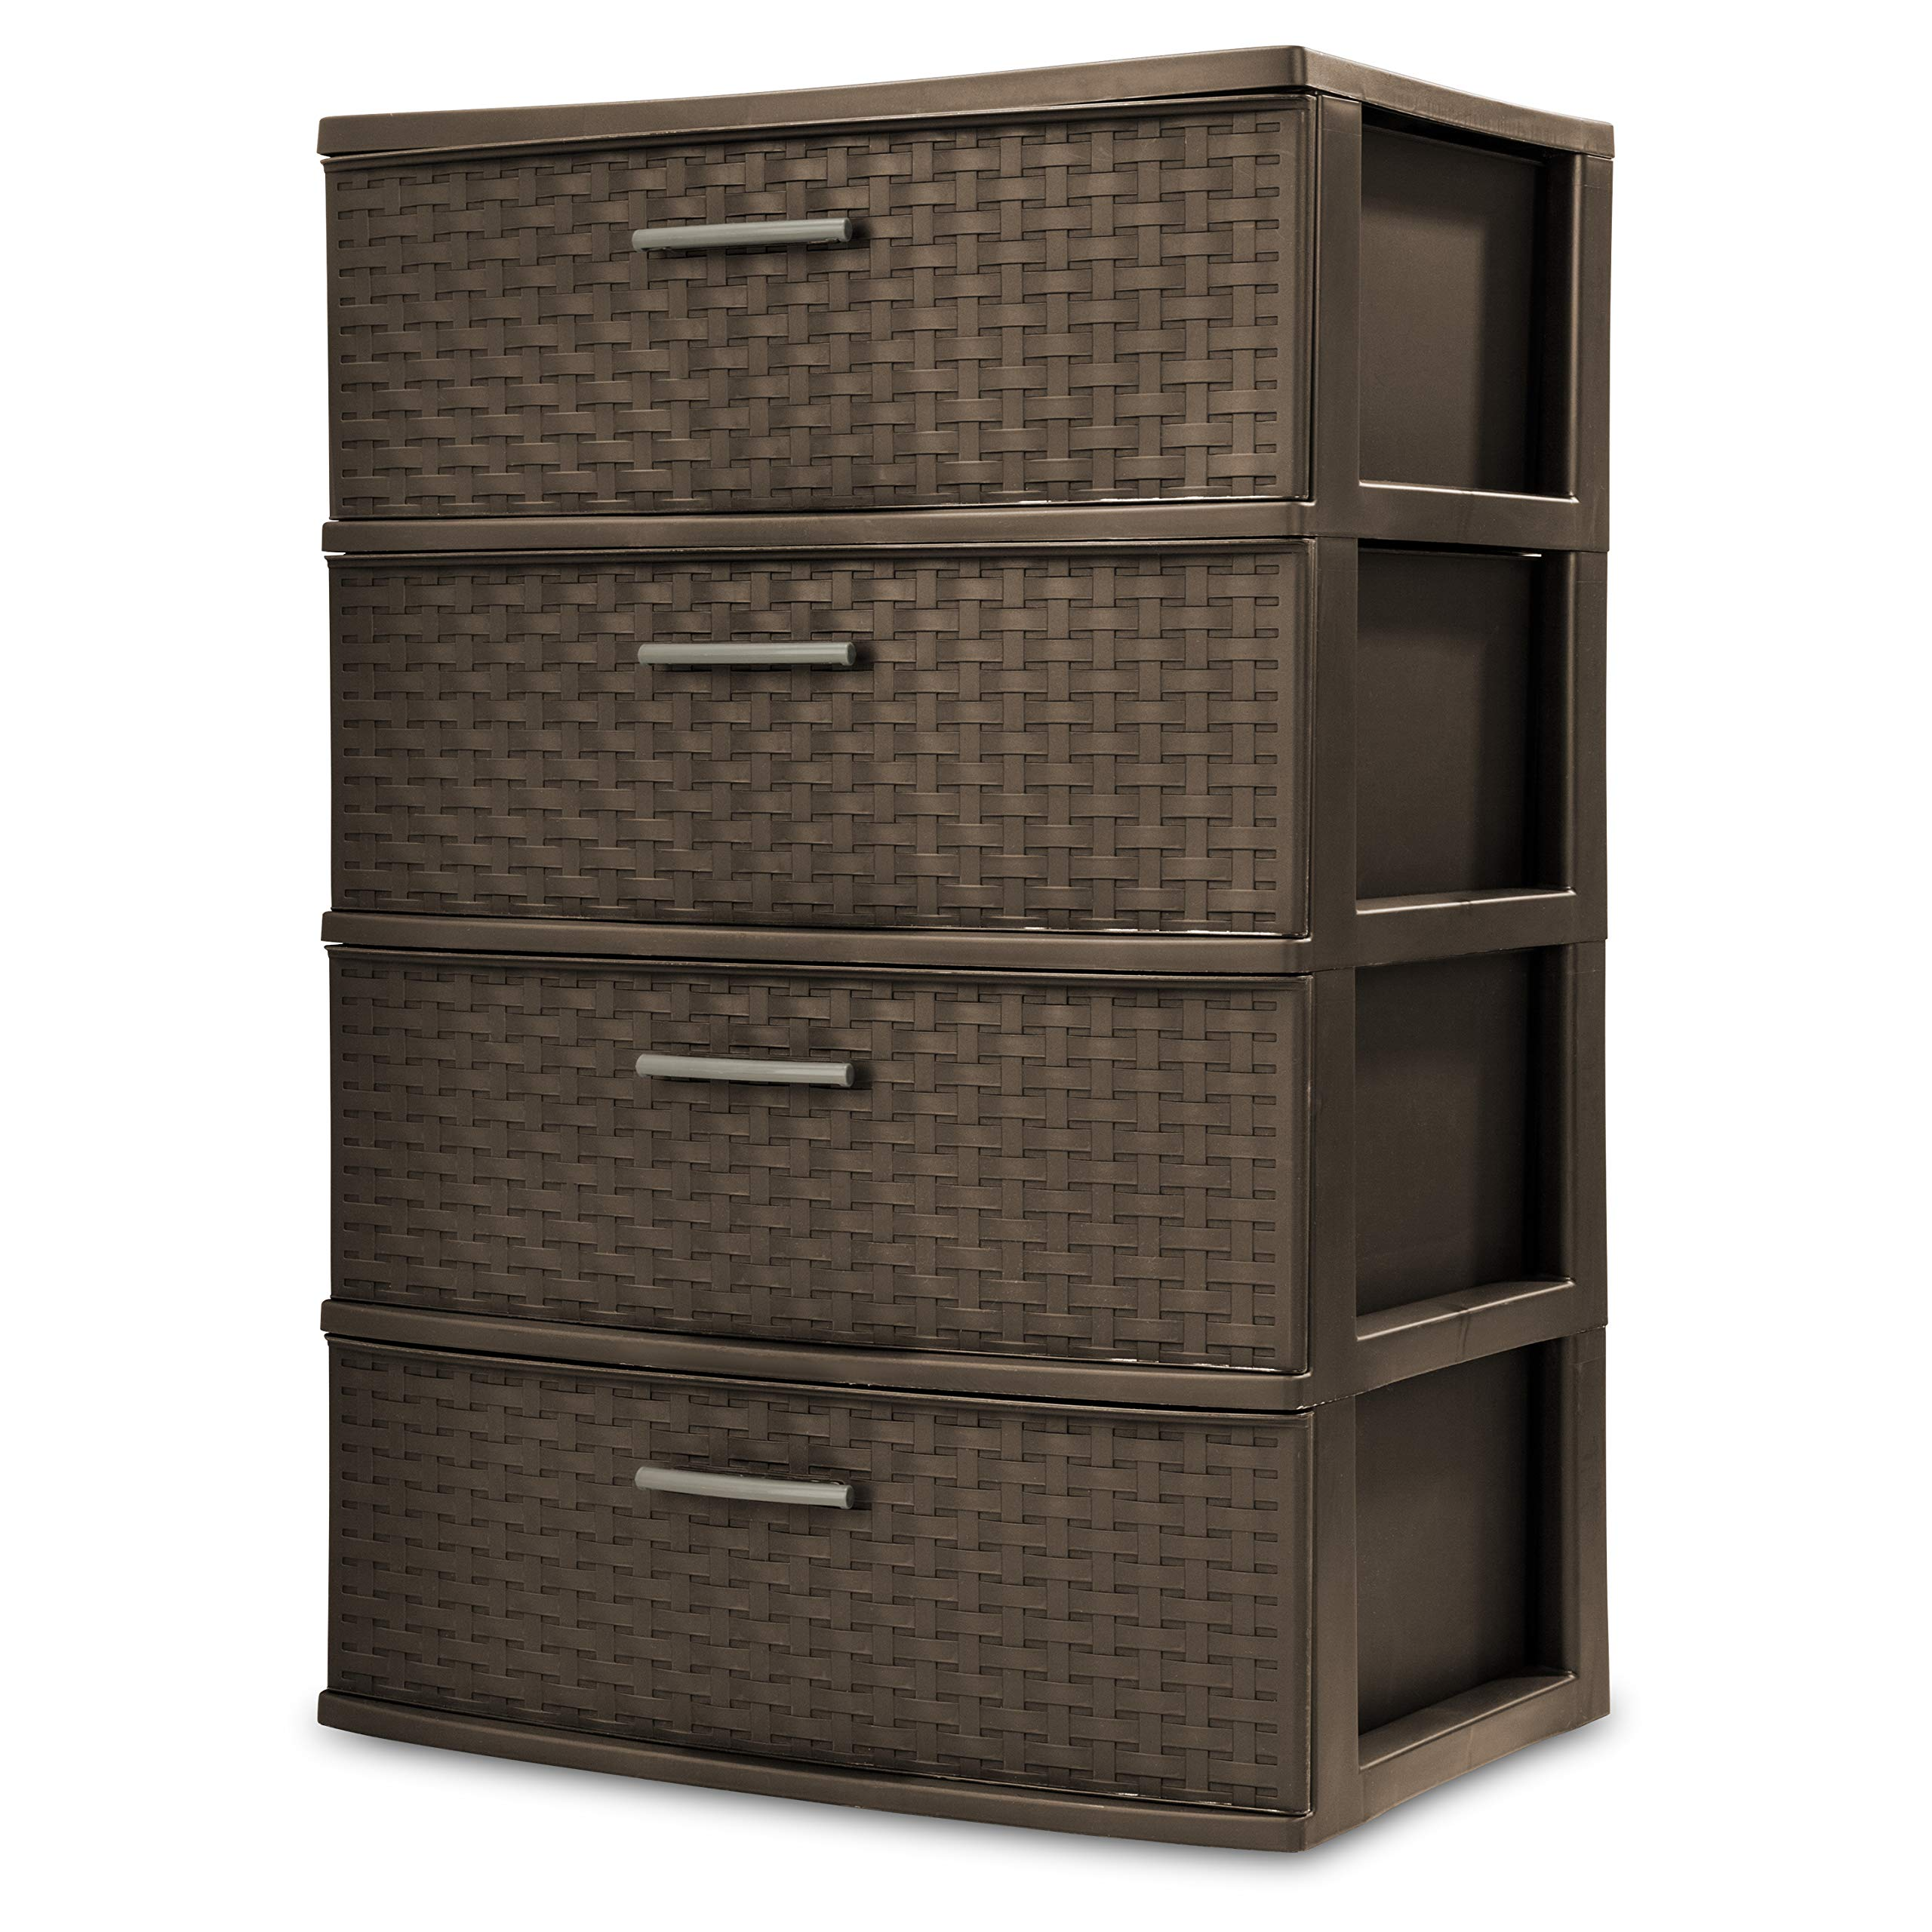 STERILITE 4-Drawer Wide Weave Tower, Espresso Frame & Drawers w/Driftwood Handles, 1-Pack by STERILITE